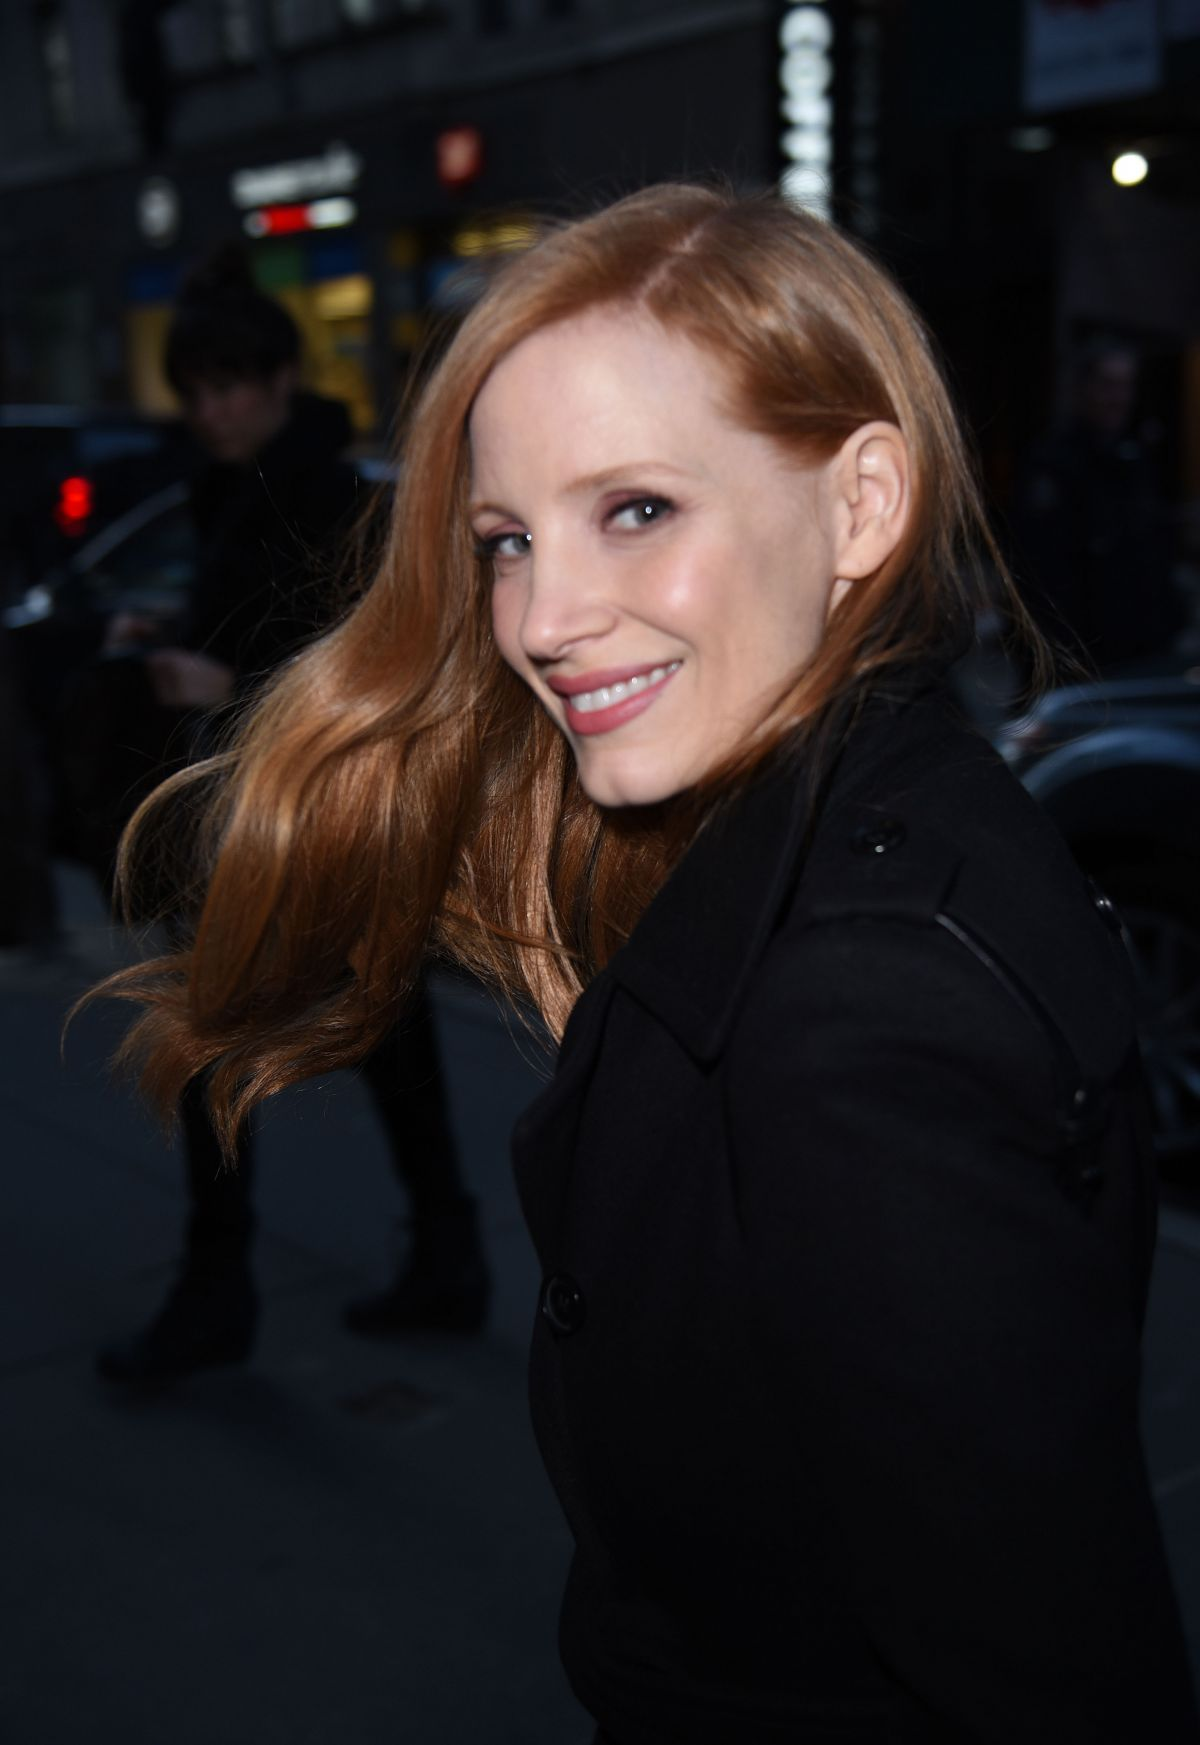 Jessica Chastain Archives - Page 2 of 27 - HawtCelebs - HawtCelebs Jessica Chastain